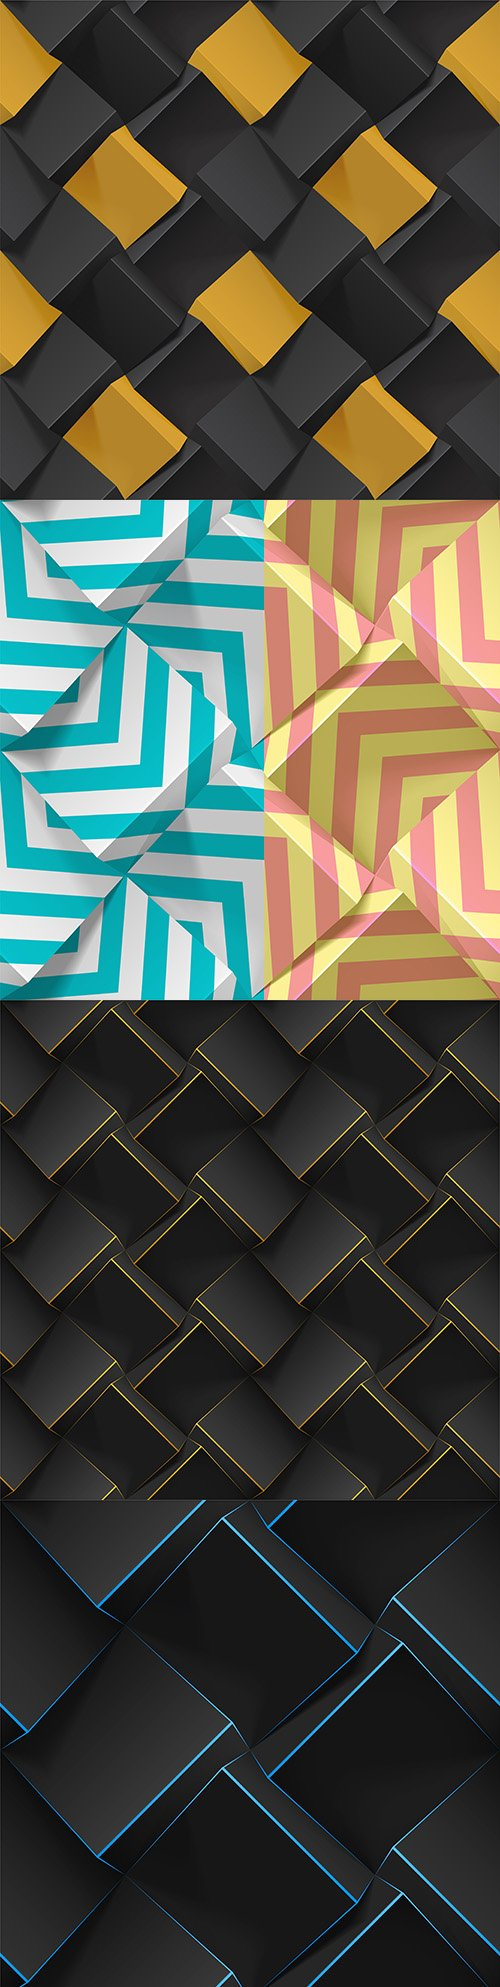 3D abstract texture with cubes realistic geometric pattern